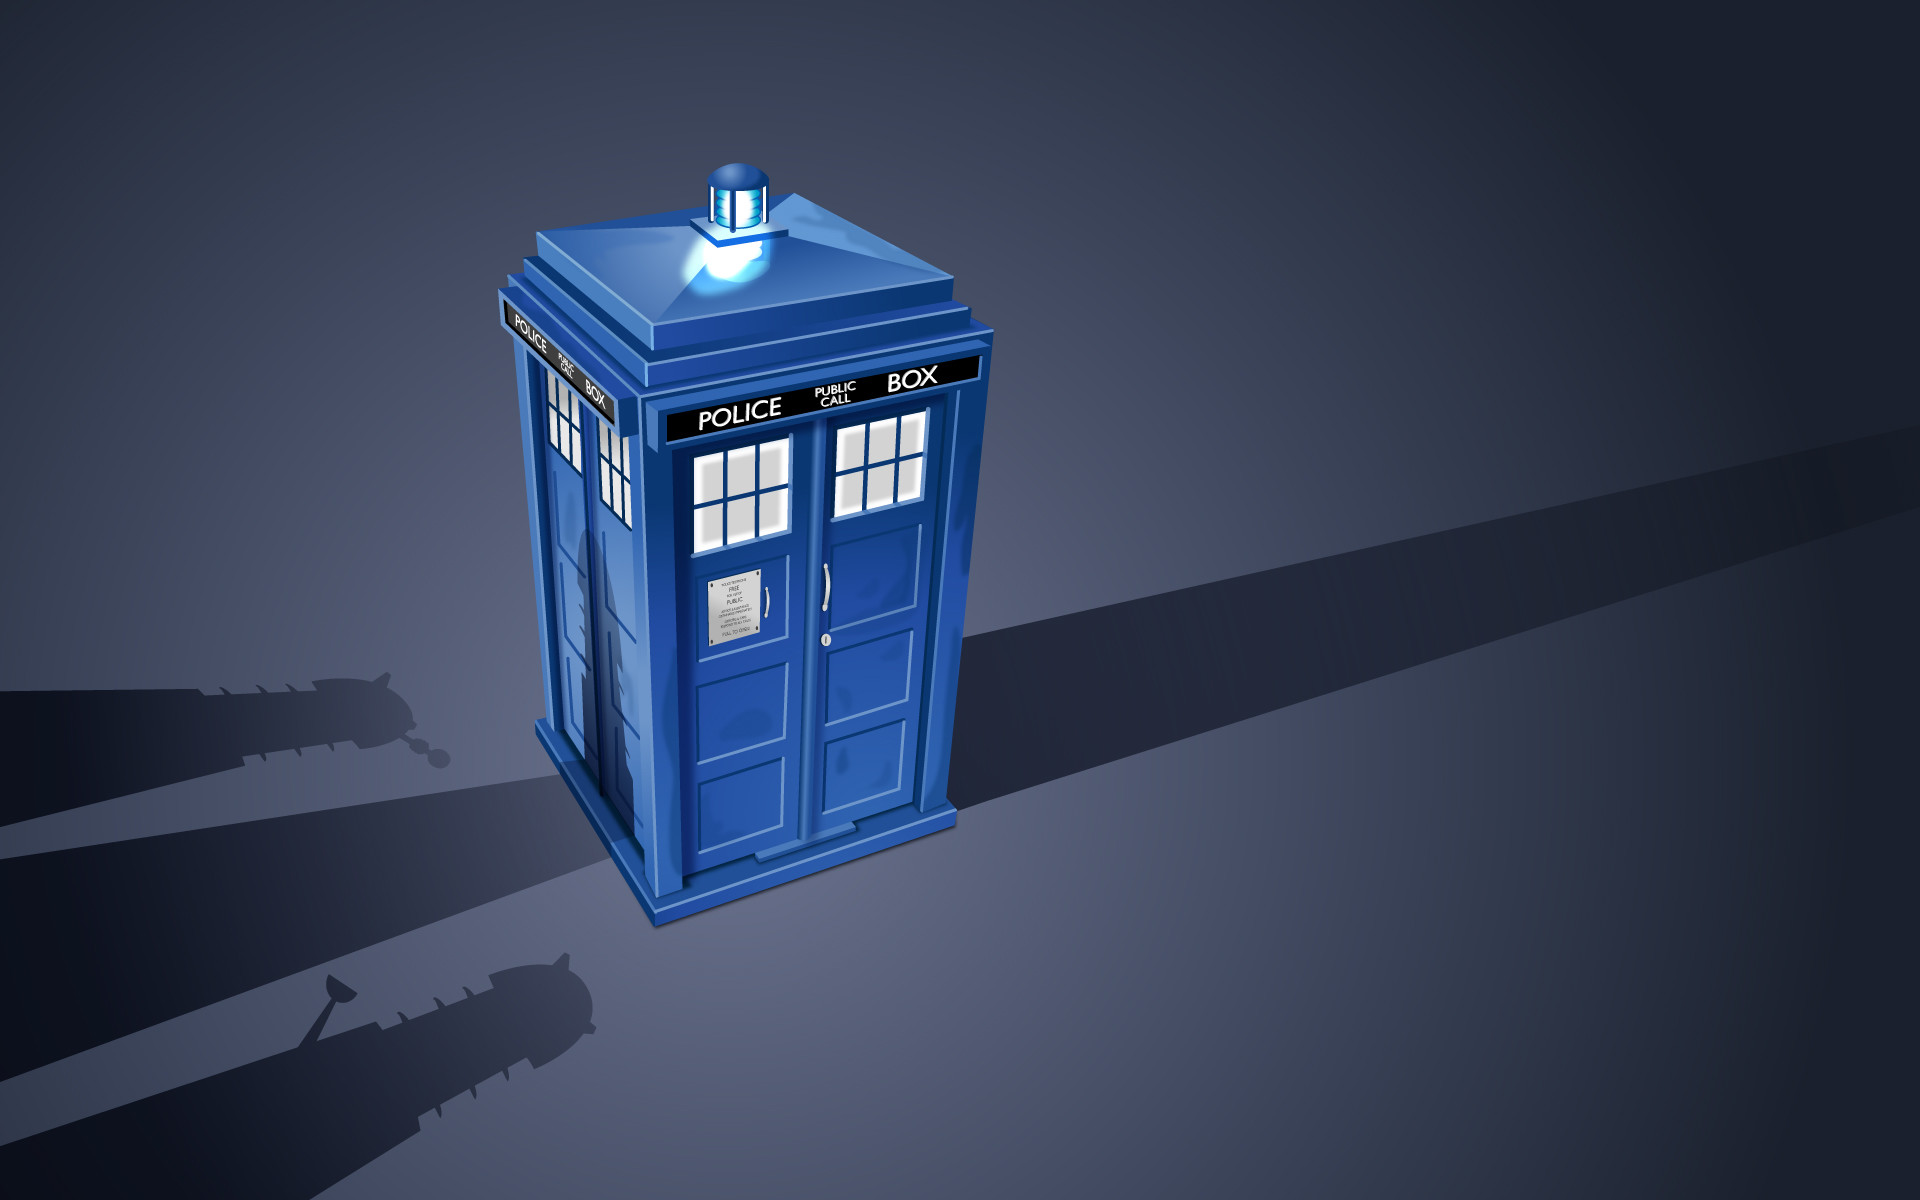 1920x1200 wallpaper TARDIS · Doctor Who · Daleks